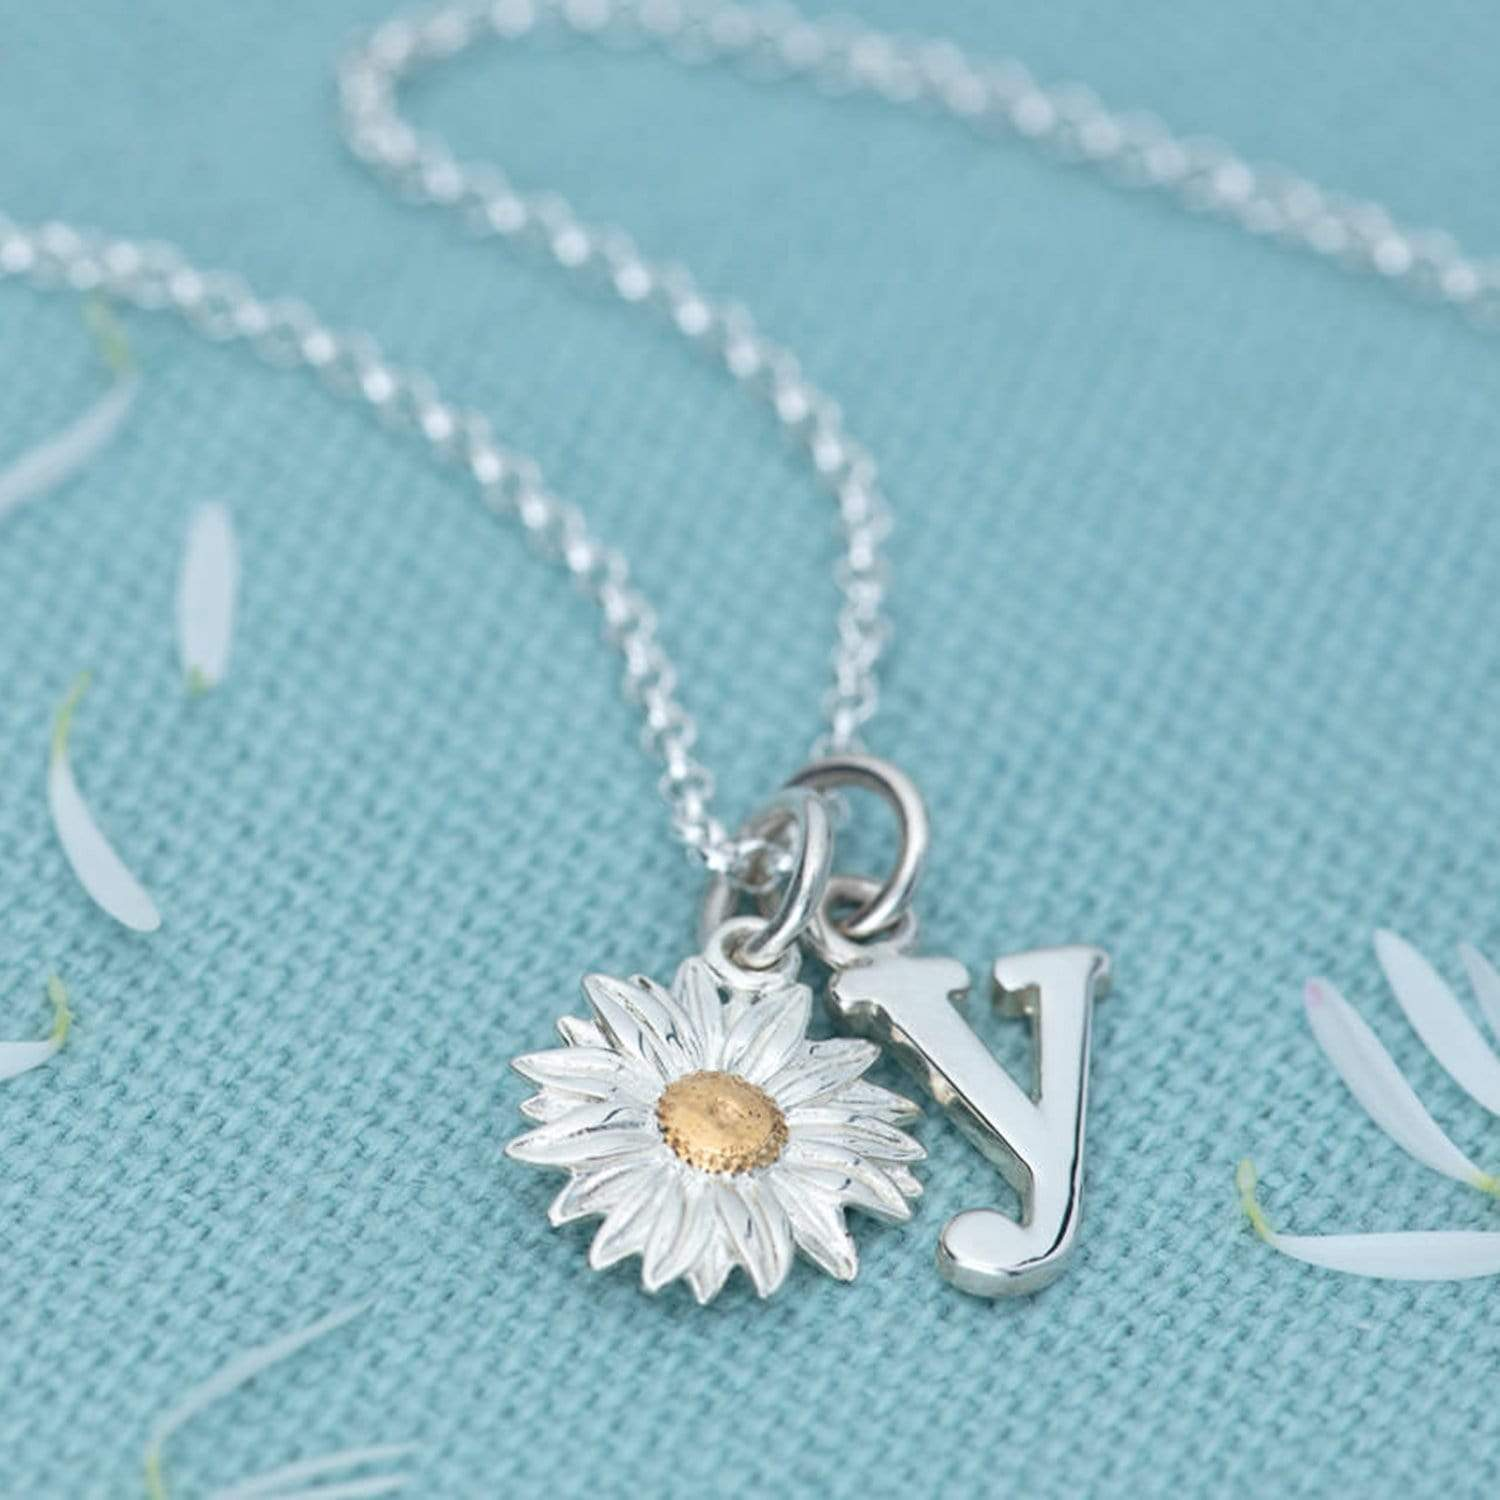 Silver Daisy Jewellery Set With Stud Earrings - Lily Charmed